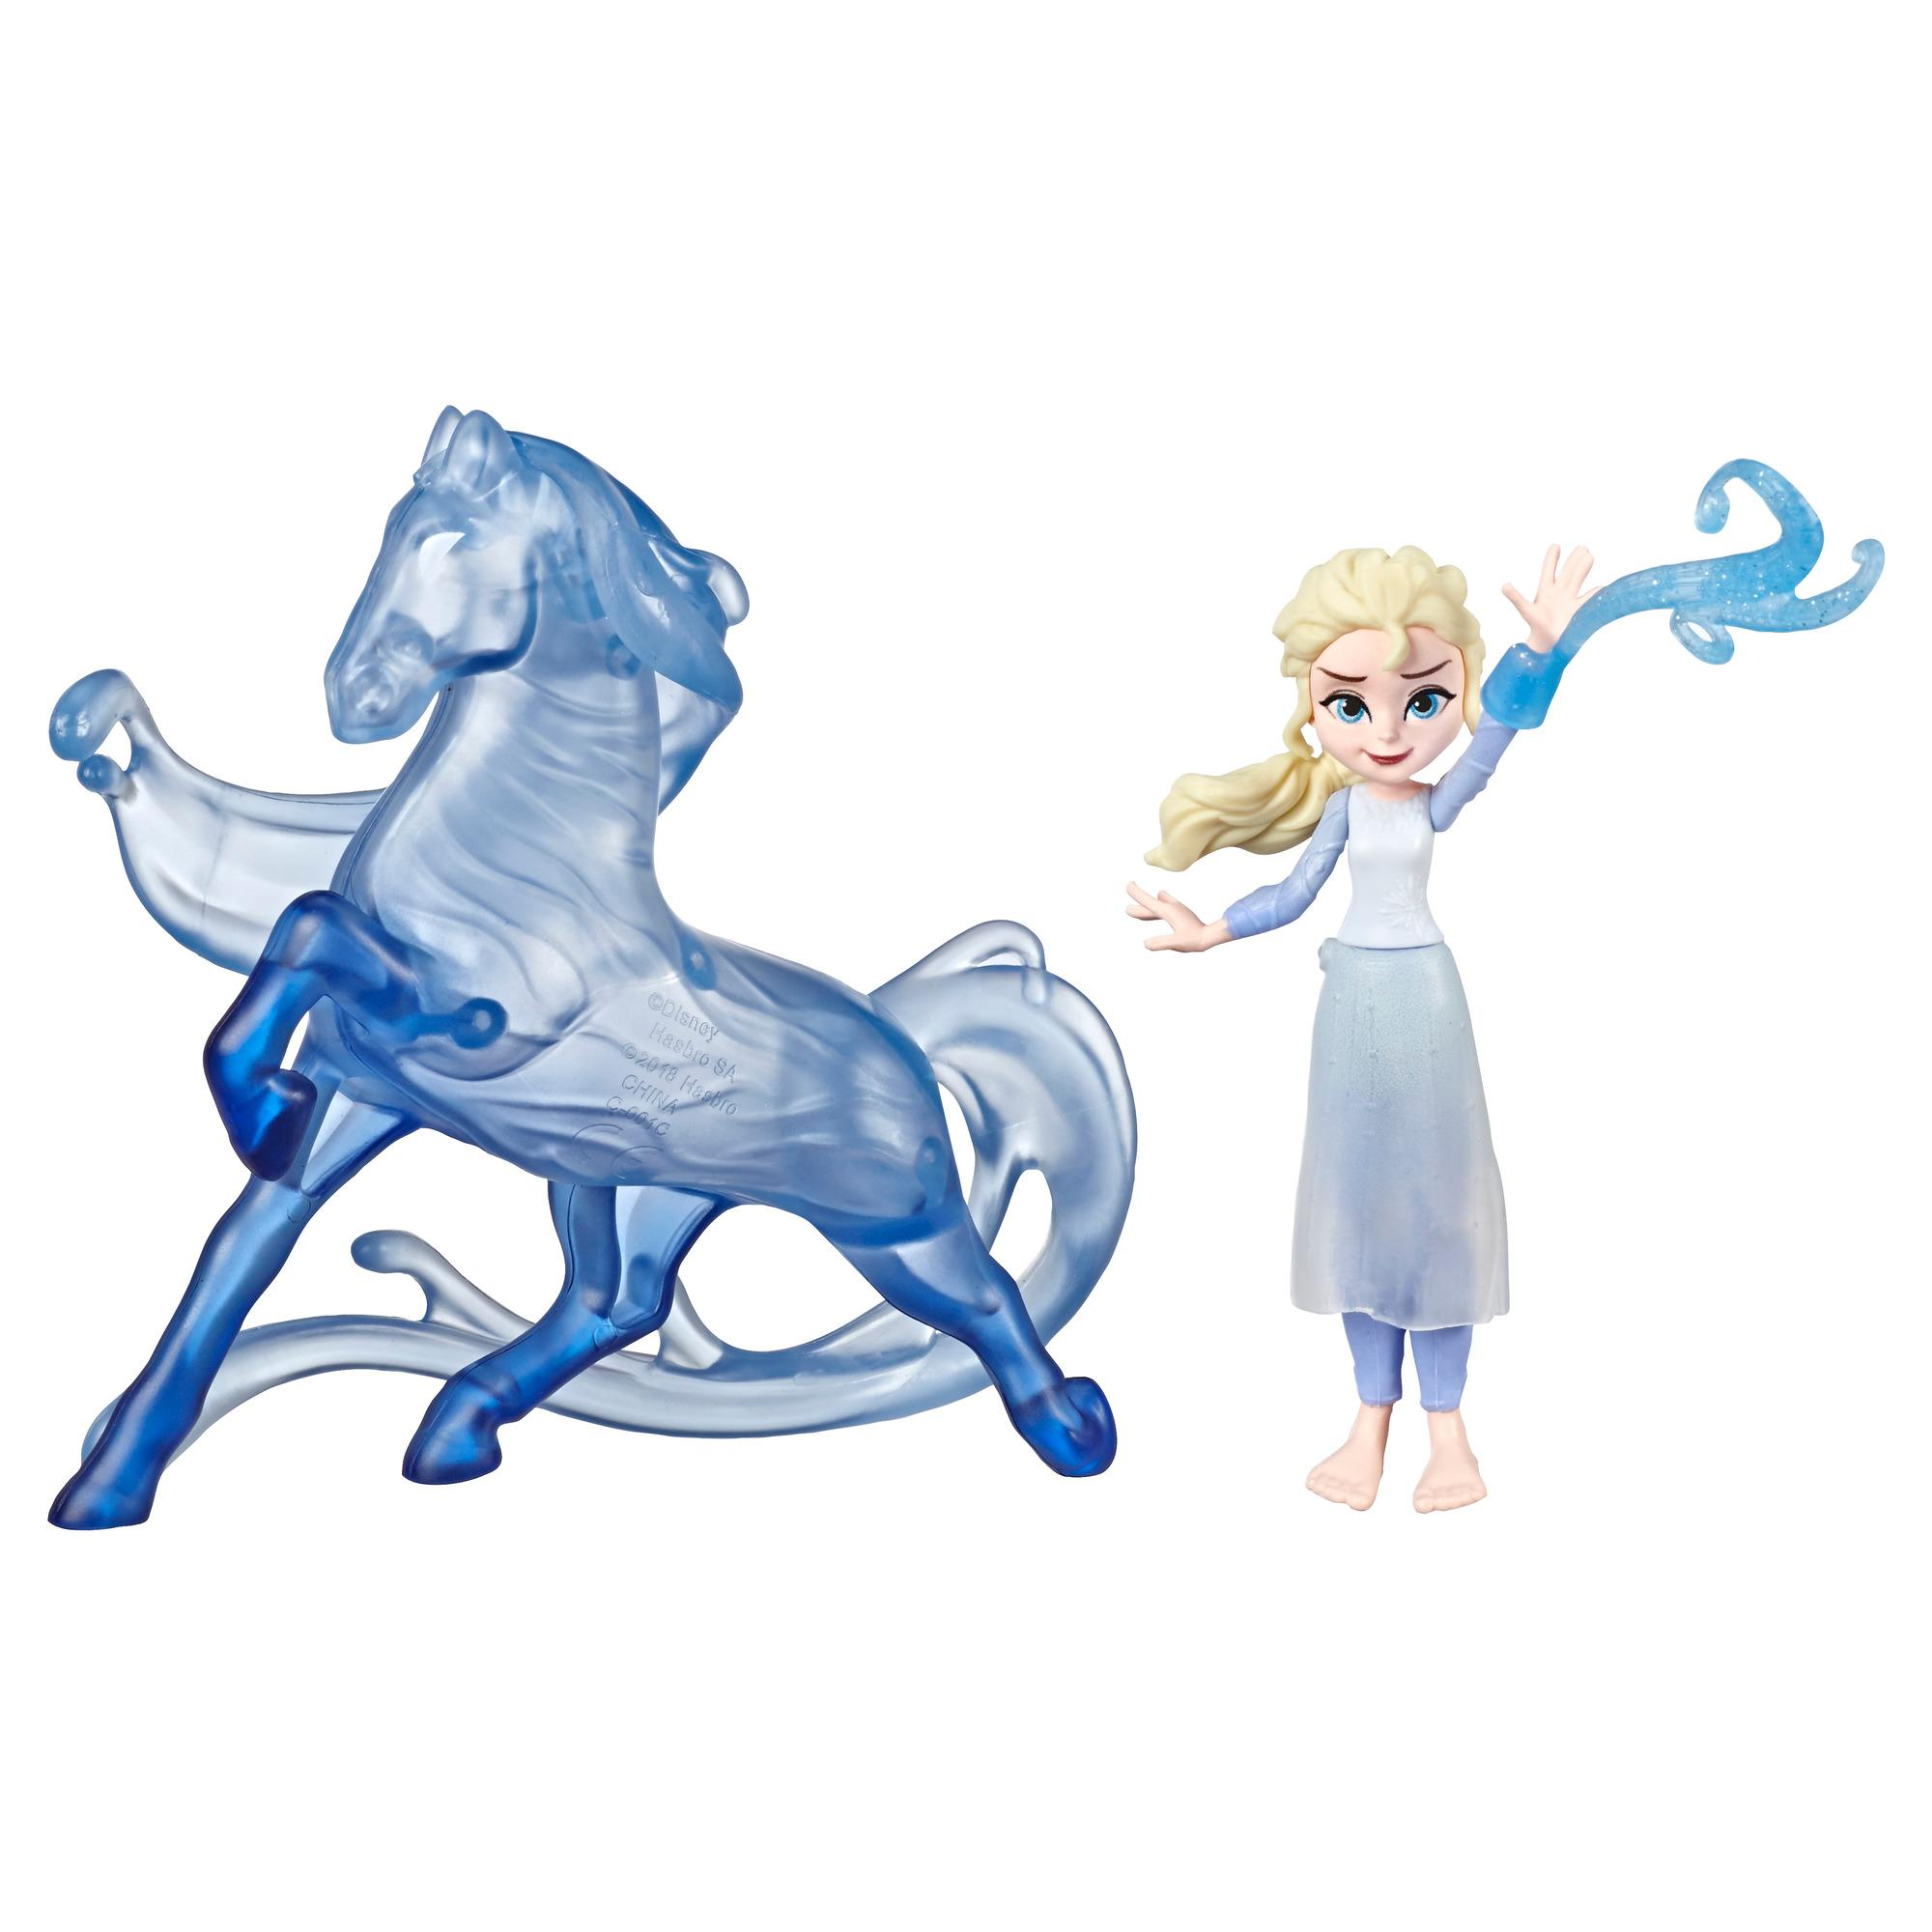 Disney Frozen Elsa Small Doll and the Nokk Figure Inspired by Disney Frozen 2